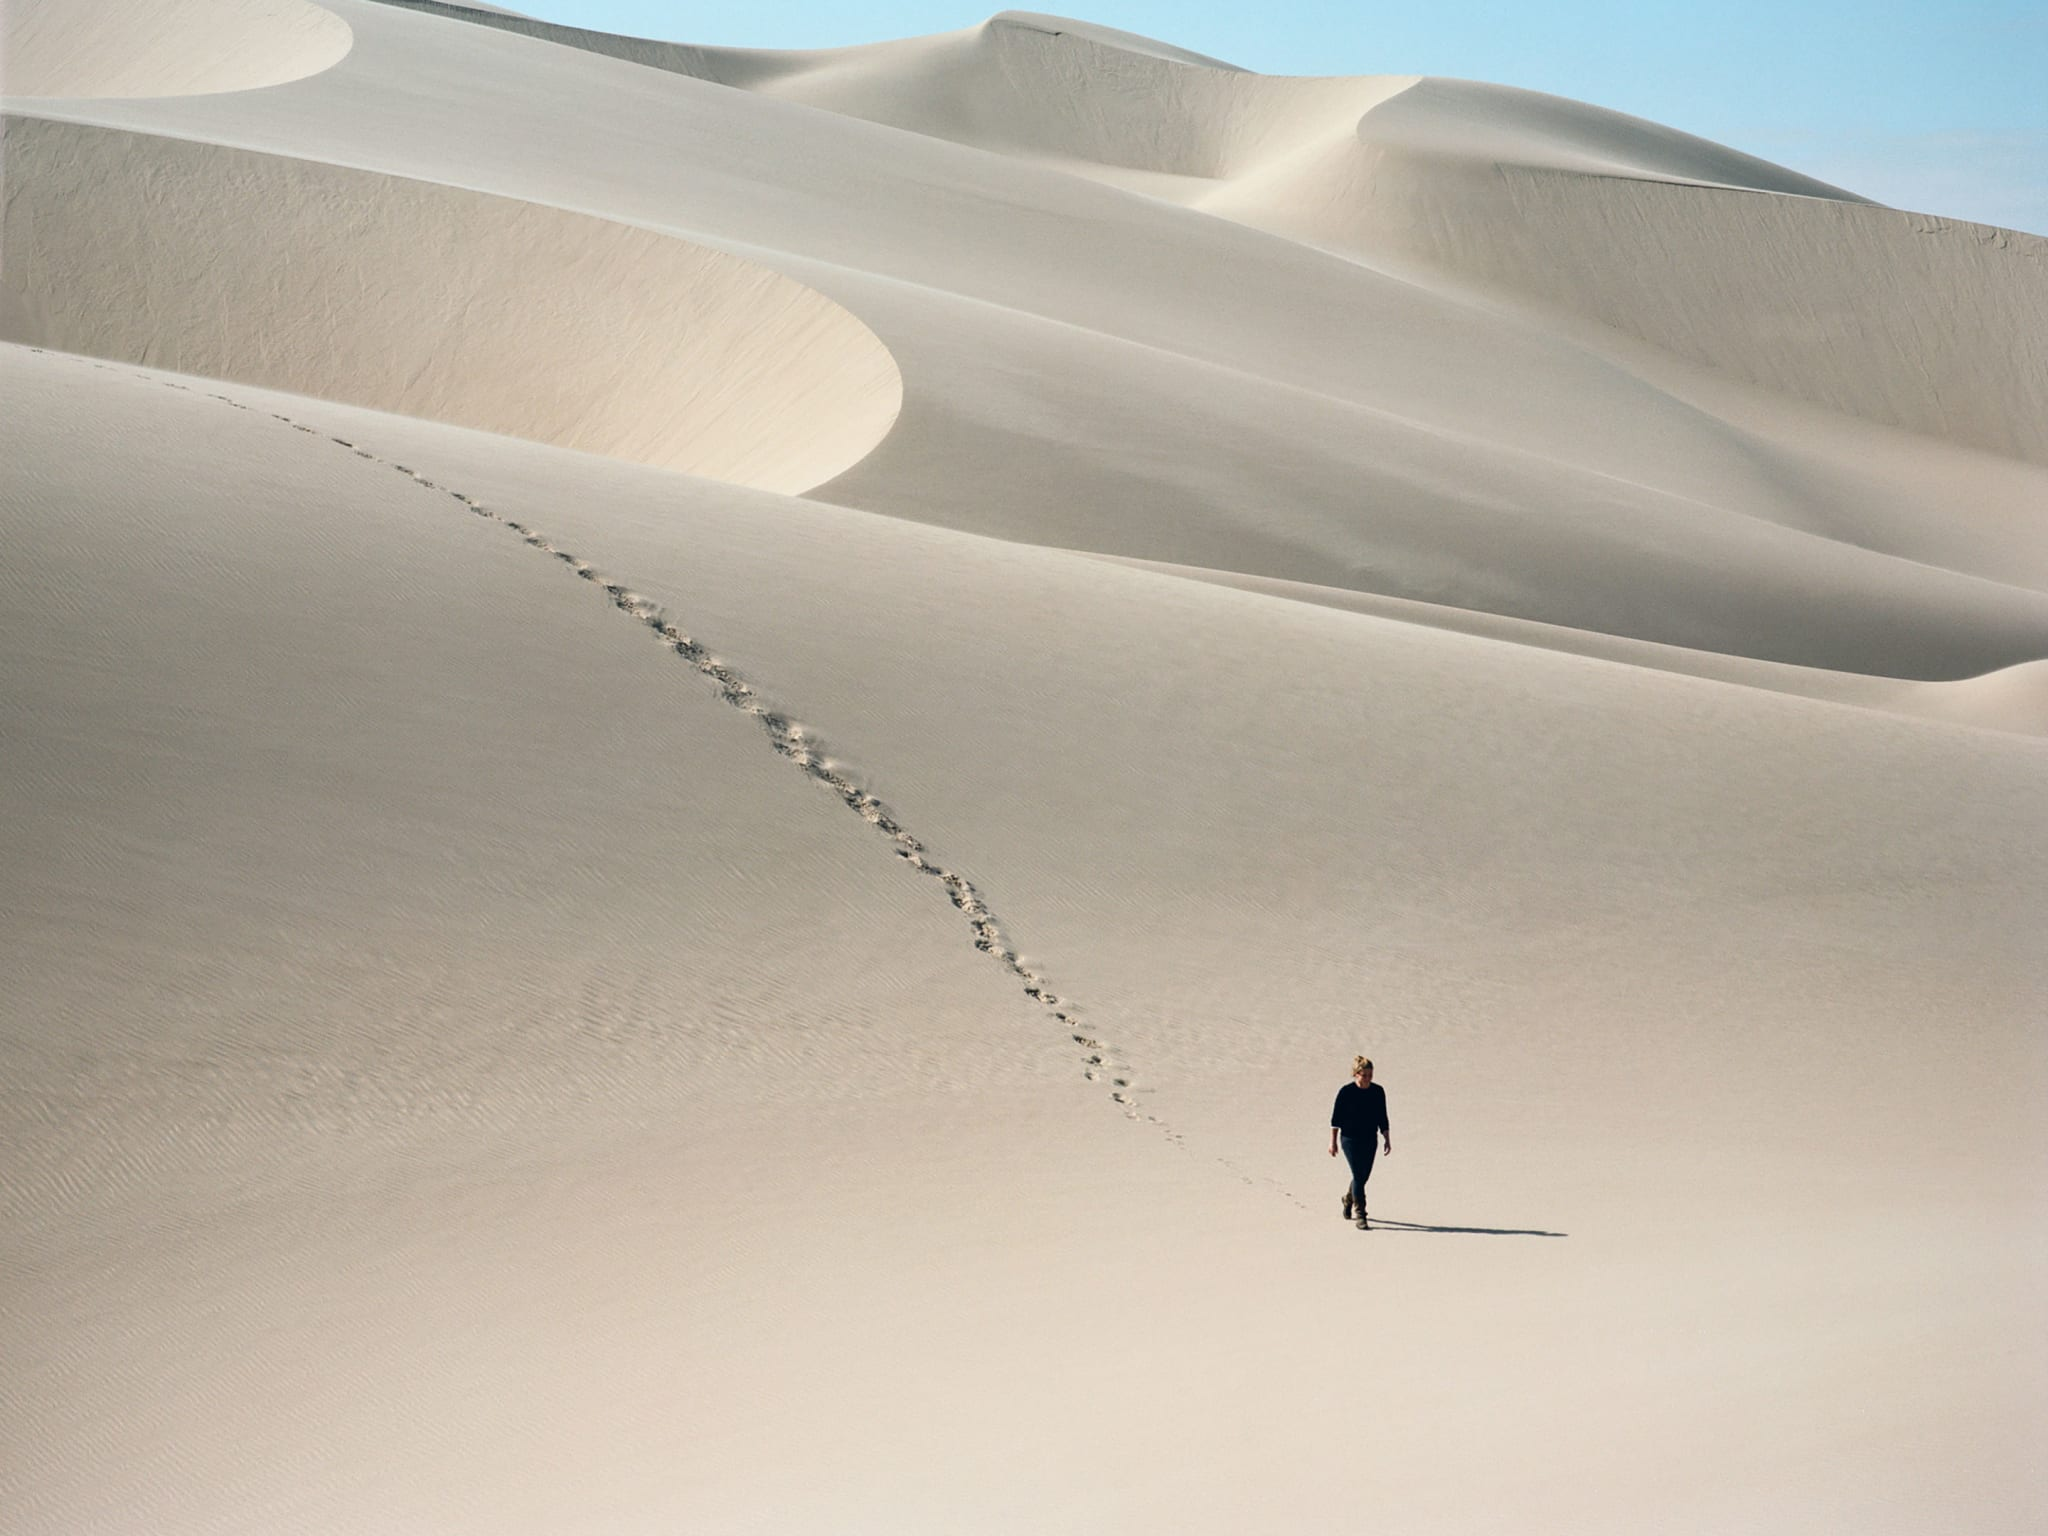 A woman walking on her own over sand dunes with her footprints trailing behind her.